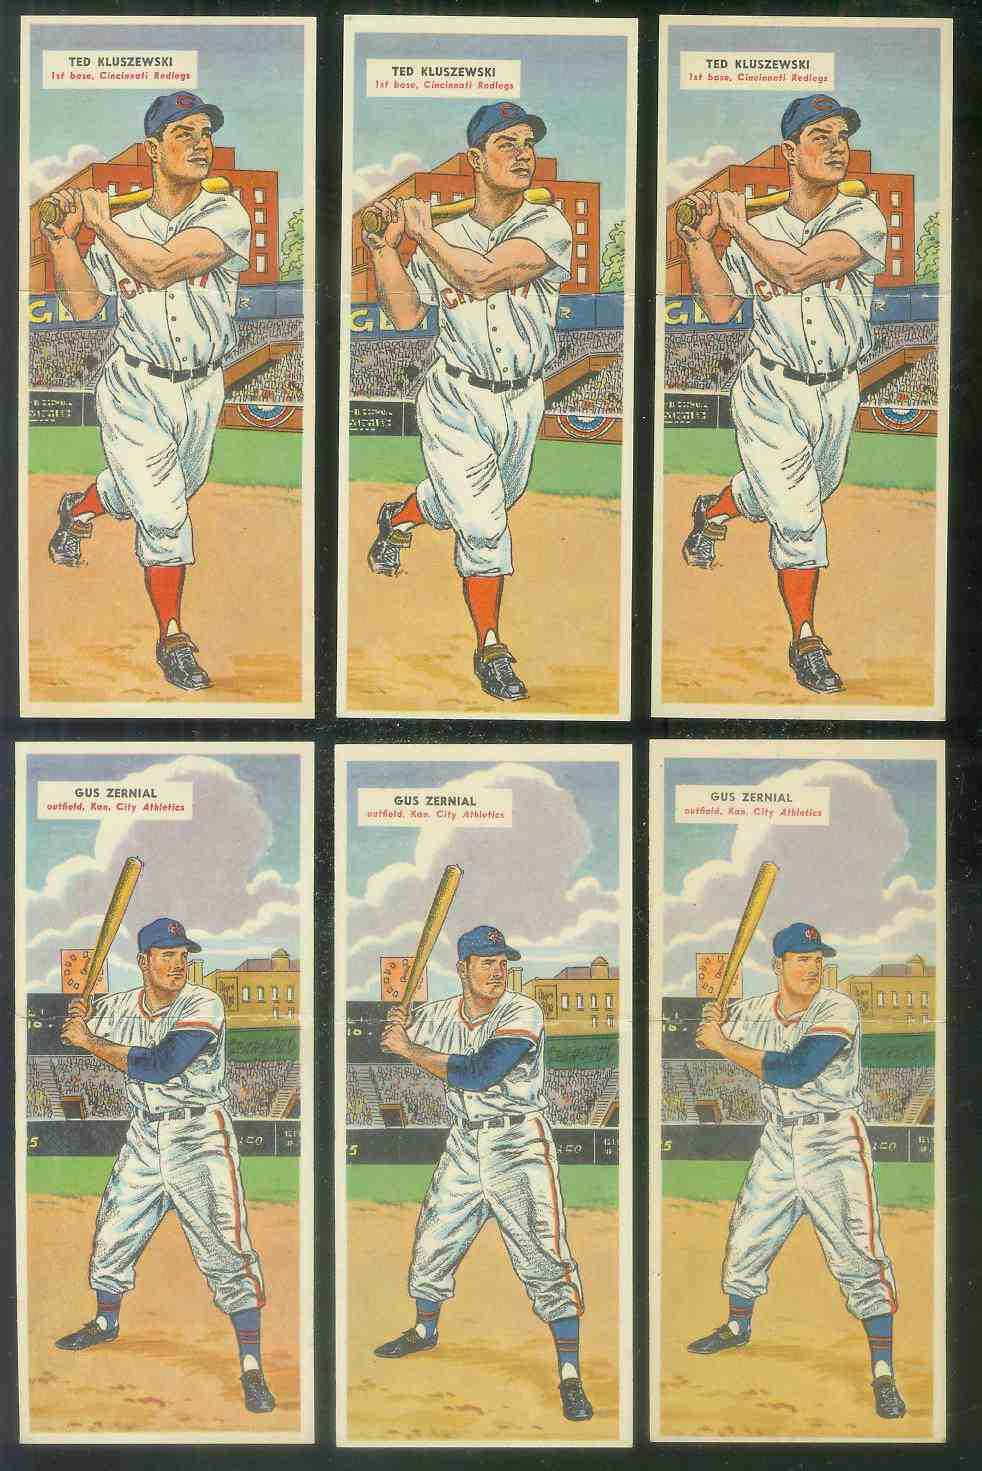 1955 Topps Double Header #121 Ted Kluszewski / #122 Jim Owens [#x] Baseball cards value